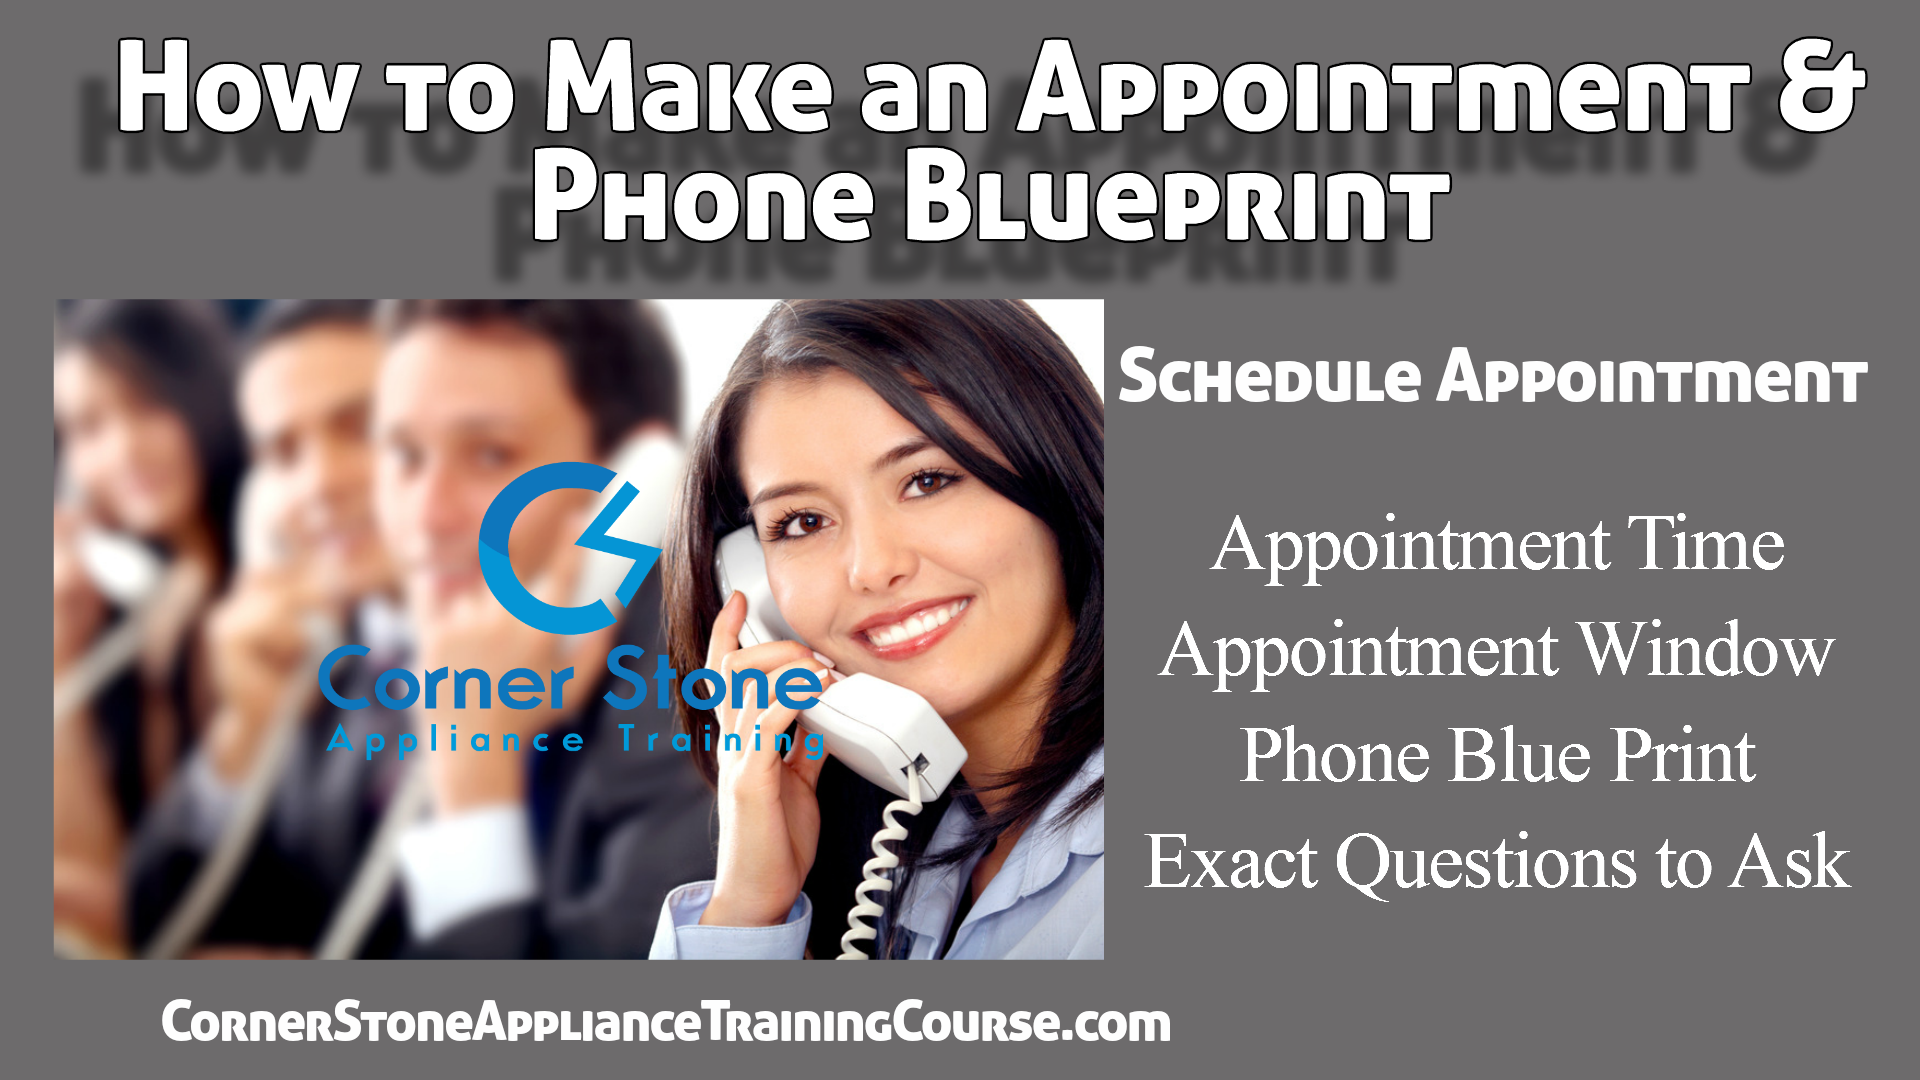 Appointments Phone Blue Print